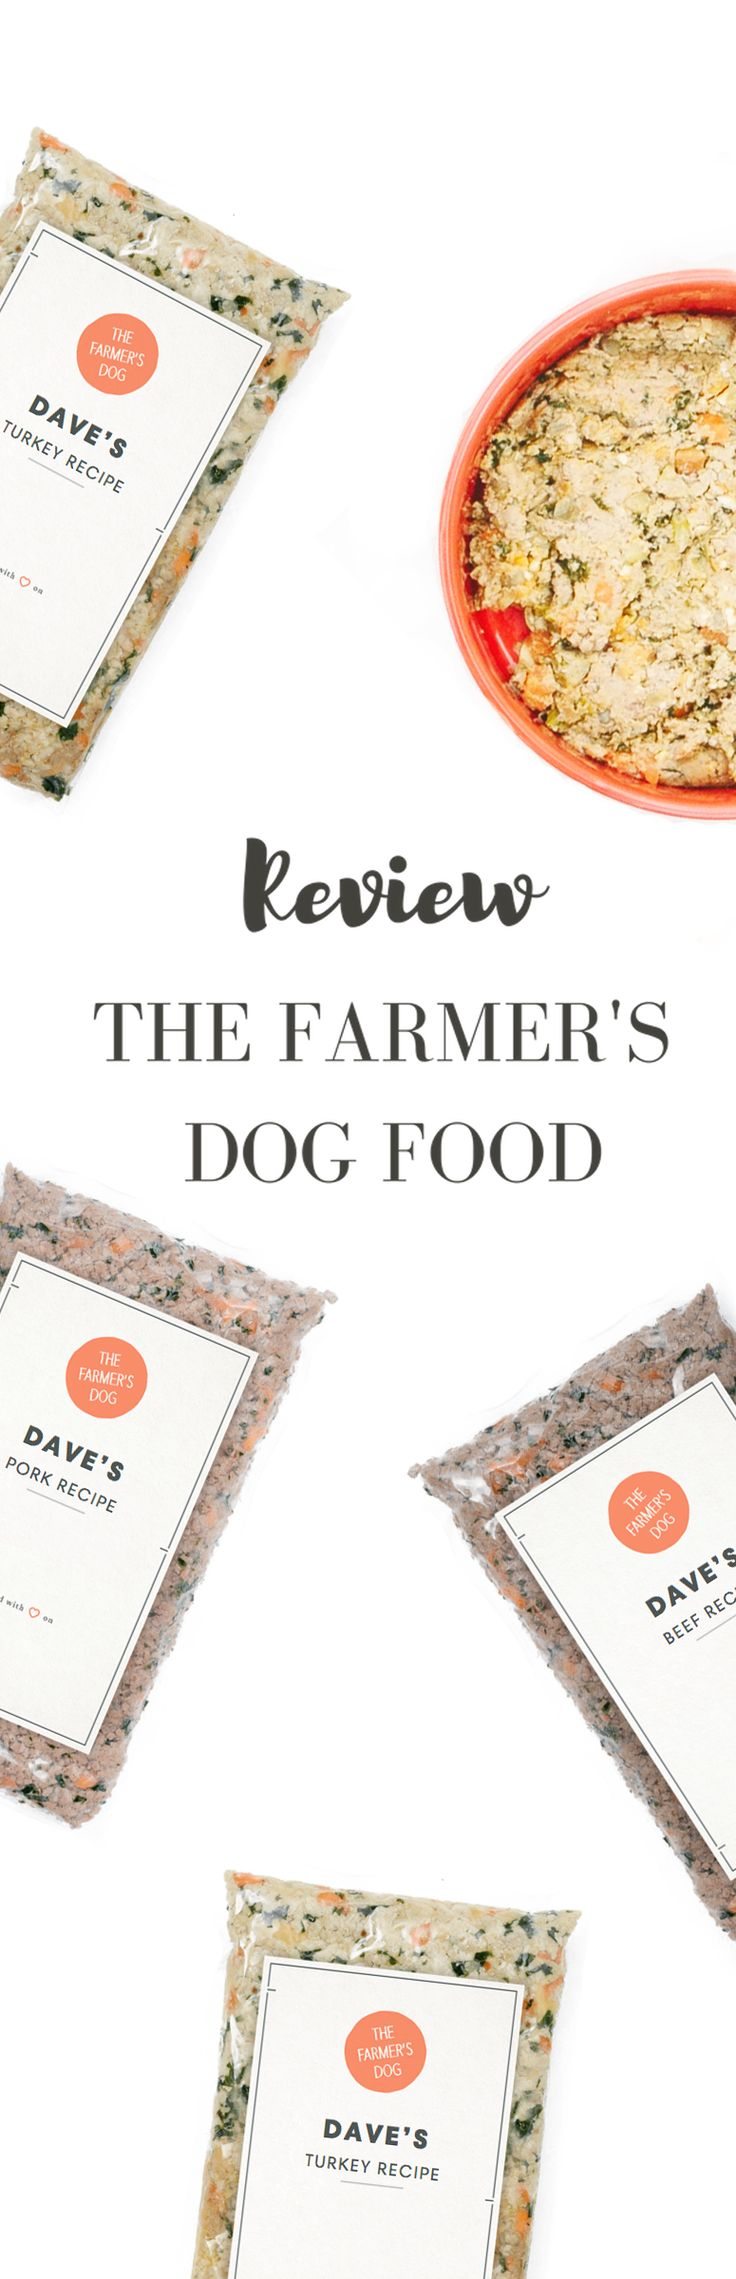 Review of The Farmer's Dog Food  Pinned by www.thedapple.com | Design | Dog Treat | Dogs | Dog Treats | Dog Training | Raising a Puppy | Pretty Dog Treats | Funny Dog Treats | Best Dog Treats |  Dog Treat DIY | Healthy Dog Treats | Homemade Dog Treats | Dog Bakery | Natural Dog Treats | Organic Dog Treats | Human Grade Dog Food | Homemade Dog Food | Subscription Dog Food |